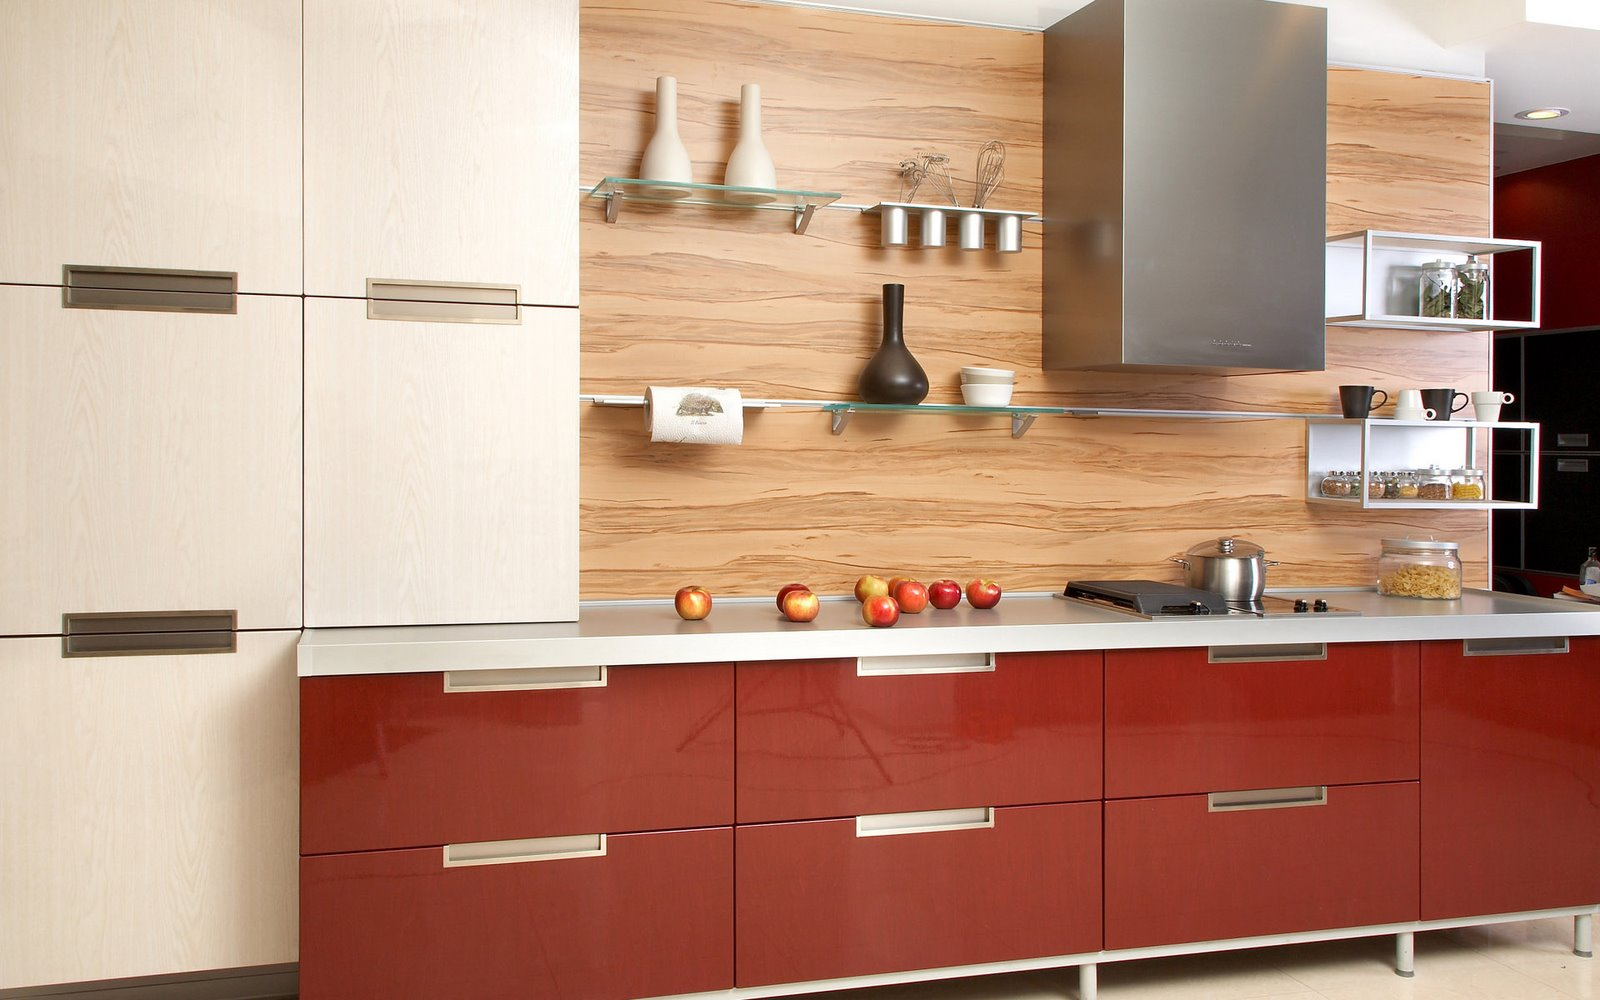 Outstanding Modern Kitchen Backsplash Ideas 1600 x 1000 · 189 kB · jpeg